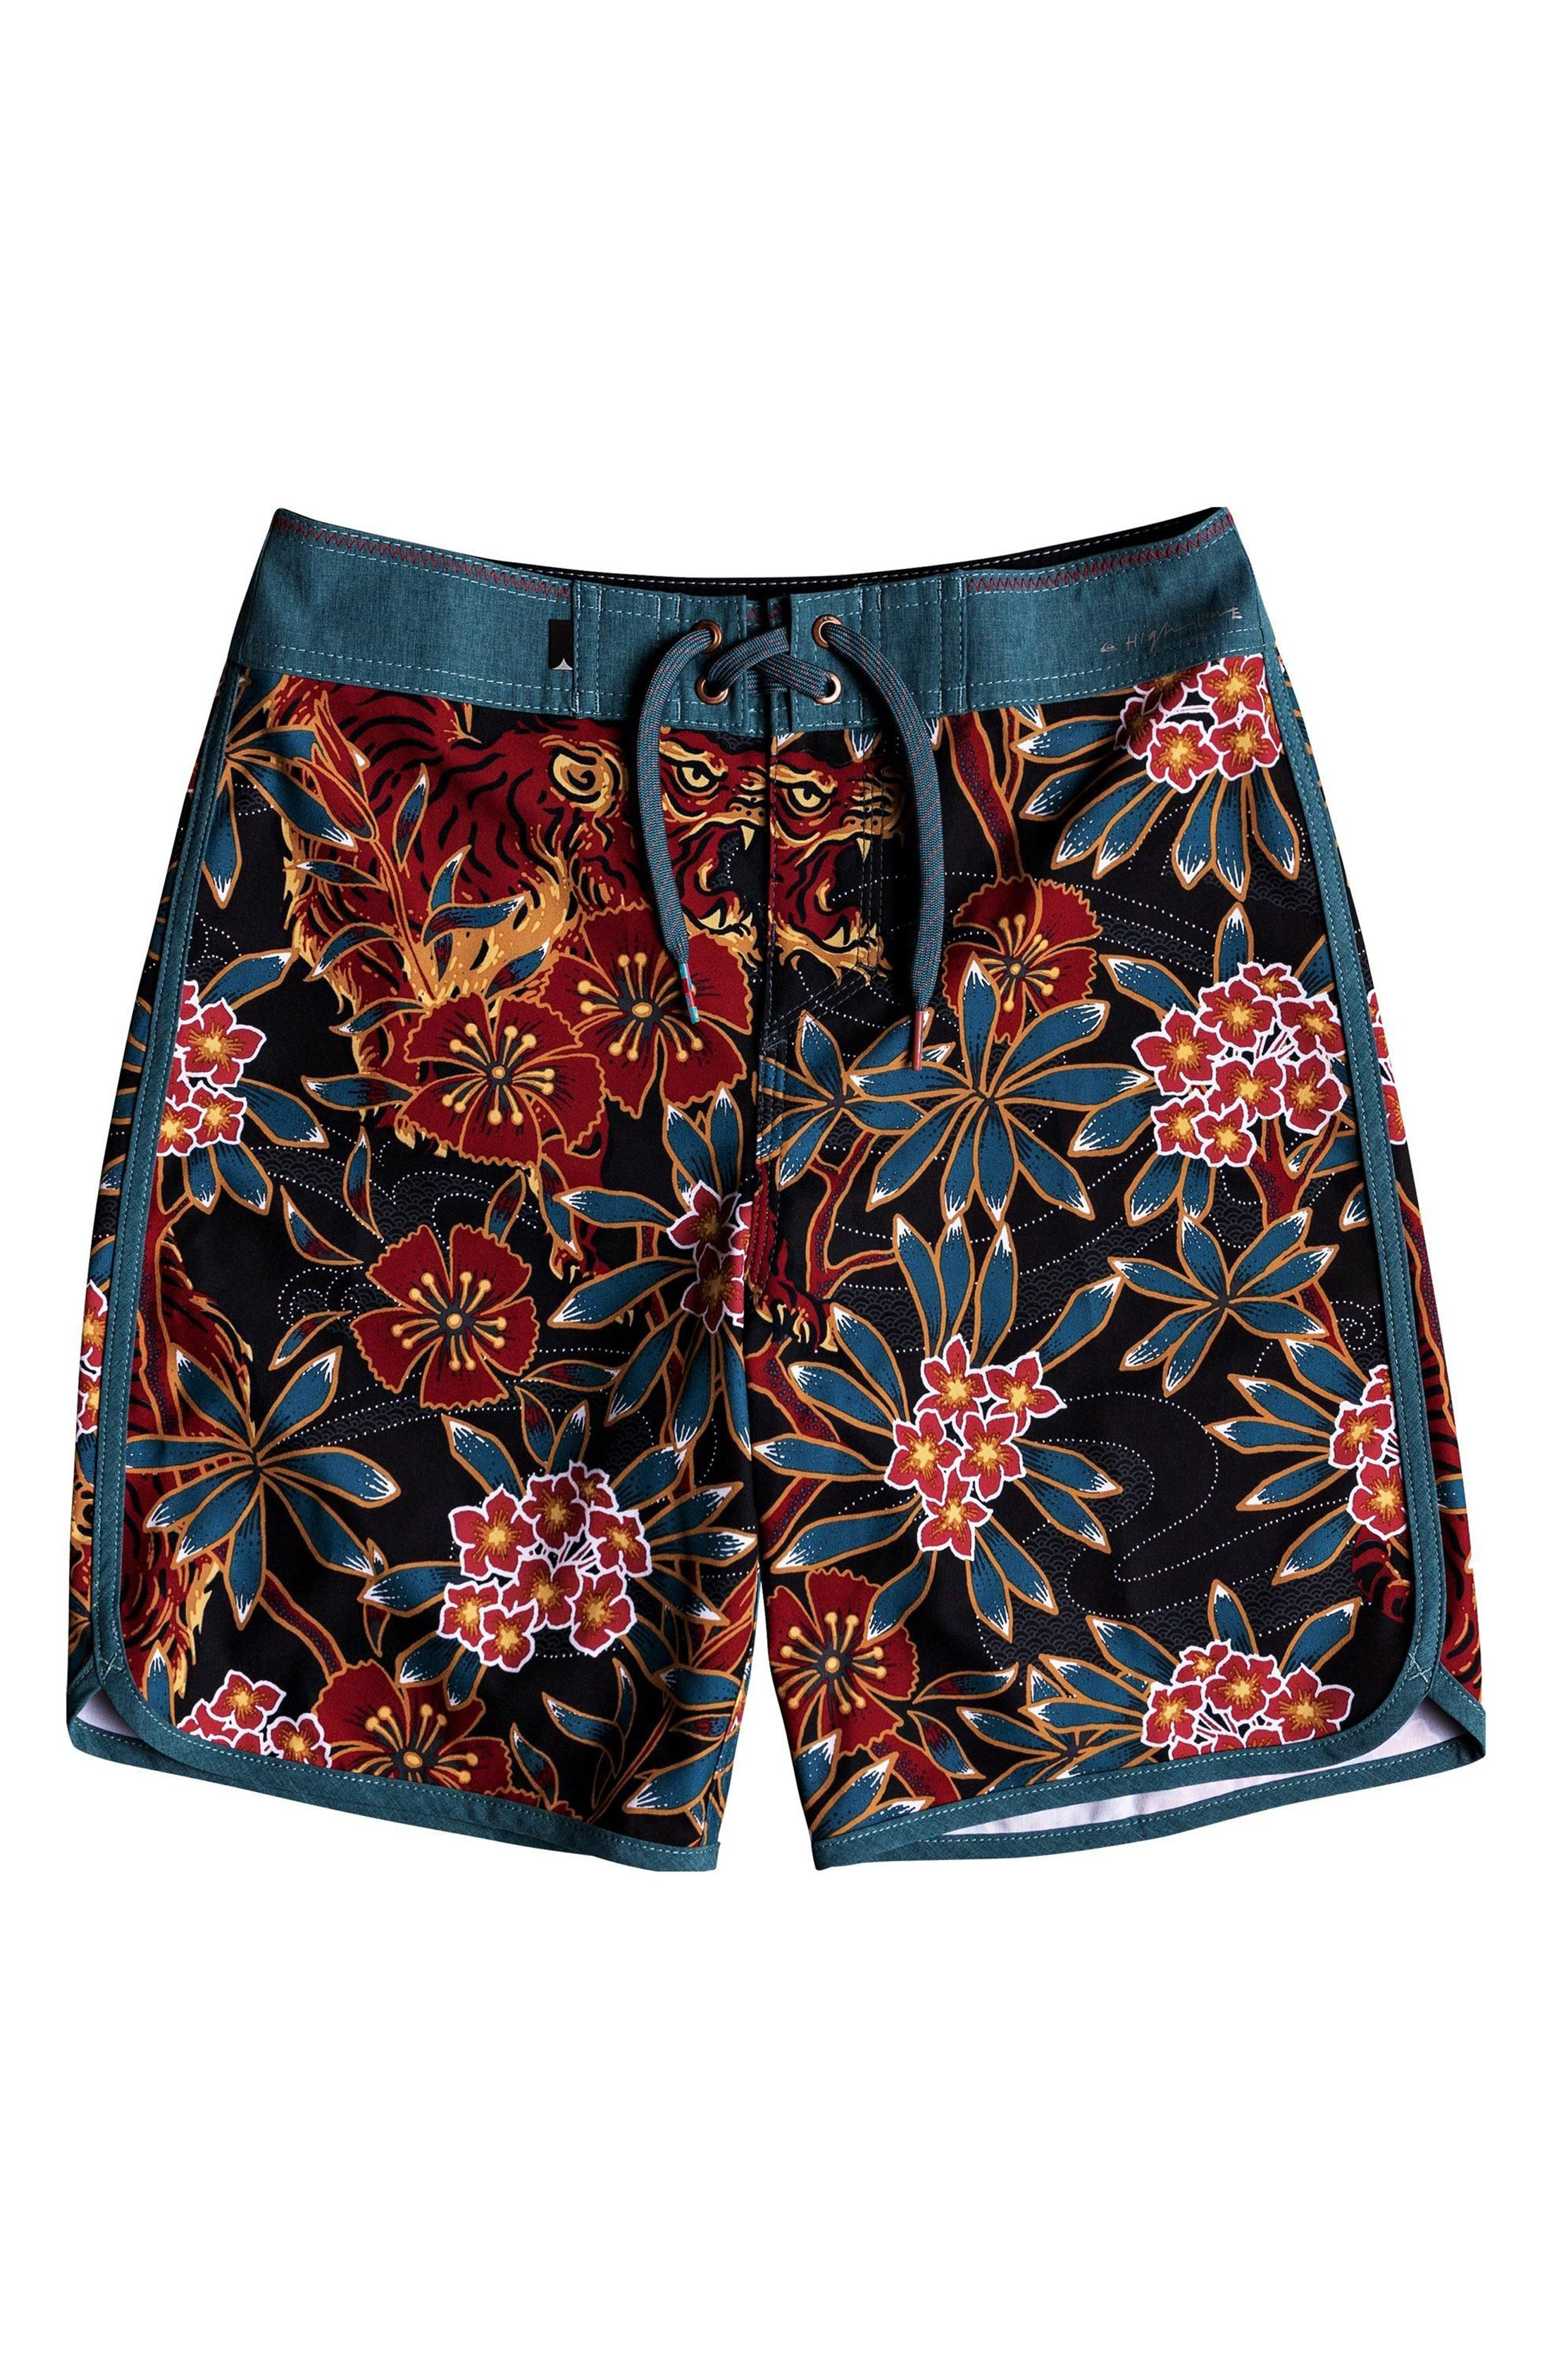 Highline Silent Fury Board Shorts,                         Main,                         color, TAPESTRY